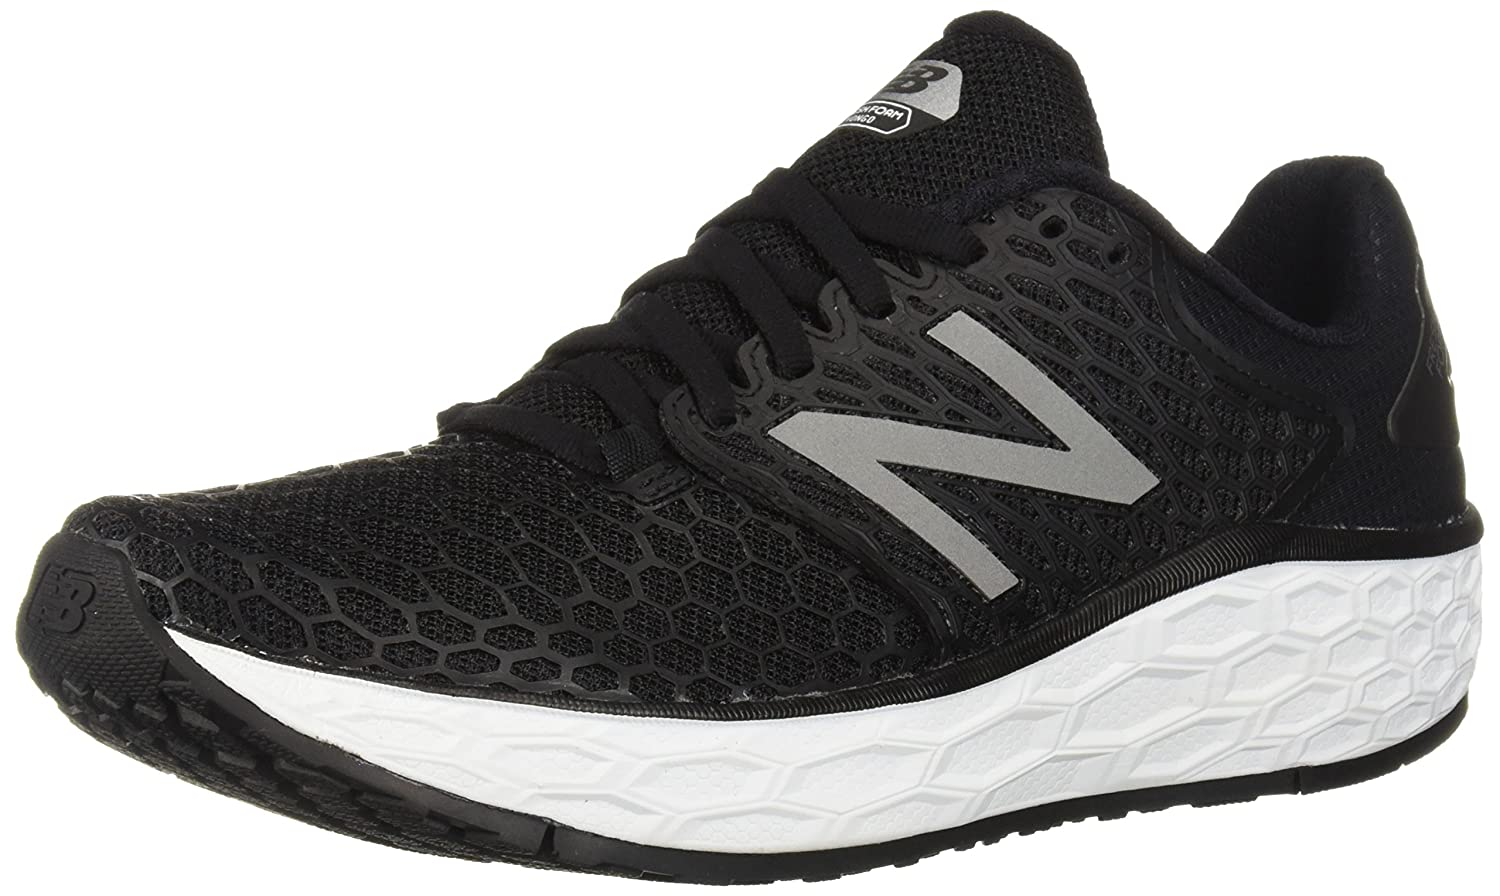 New Balance Women's Vongo V3 Fresh Foam Running Shoe B075R3RDKB 11 D US|Black